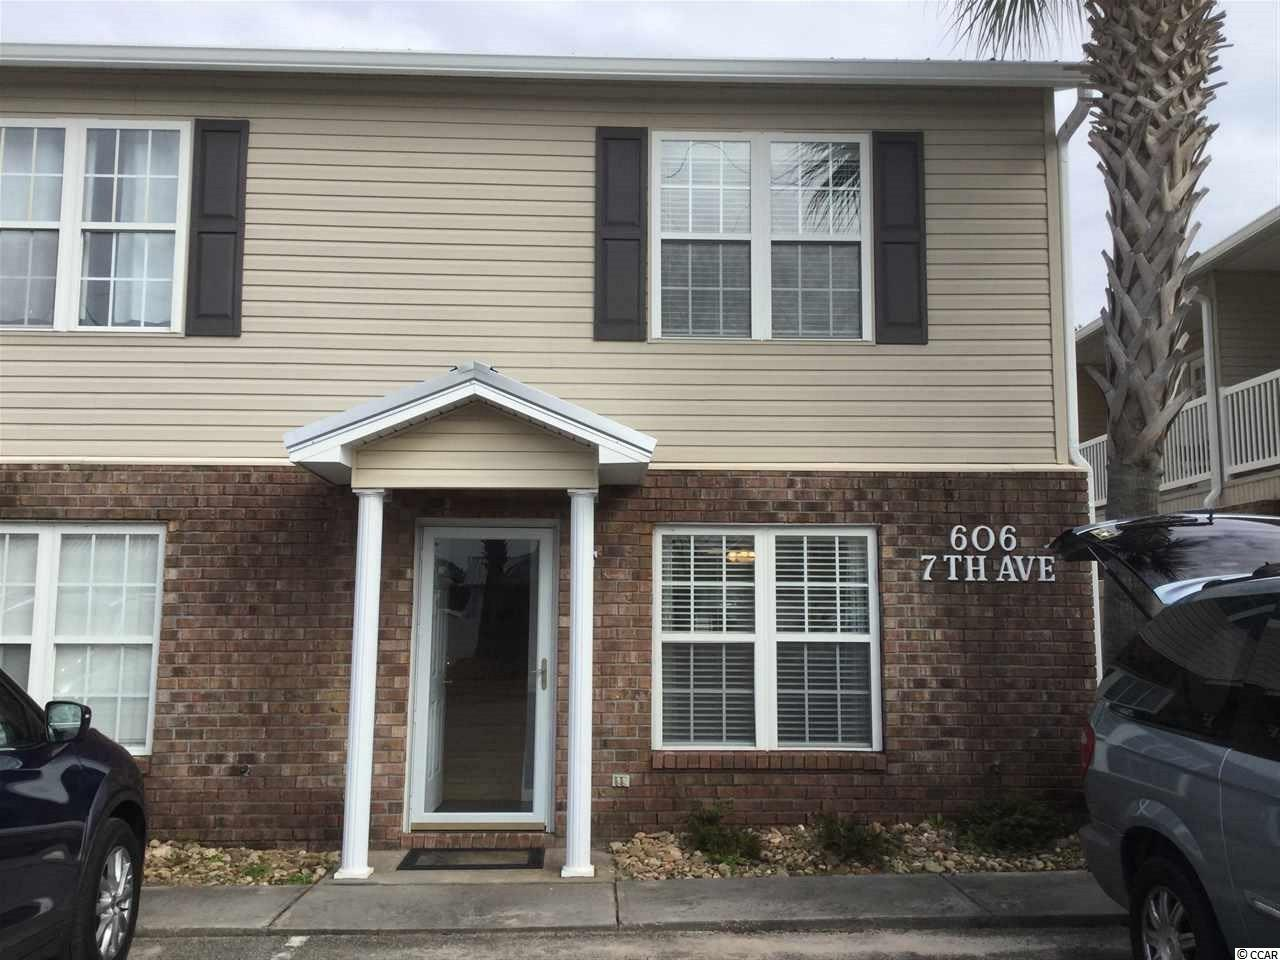 This beautiful end unit townhouse located east of HWY 17 is within walking distance to the beach. With the recently replaced roof and fenced back yard, this can be an excellent second home or a great investment venture. Seabring is one of the rare friendly HOAs that truly is represented by the homeowners. Two bedrooms are conveniently located on the second floor with a full bath and rear baloney overlooking common area. The main level features living room, open concept kitchen with an island and a half bath. Located only minutes from Main Street (with its summer concerts), dining, shopping and of course the BEACH. Schedule your appointment to see this READY TO MOVE IN home.